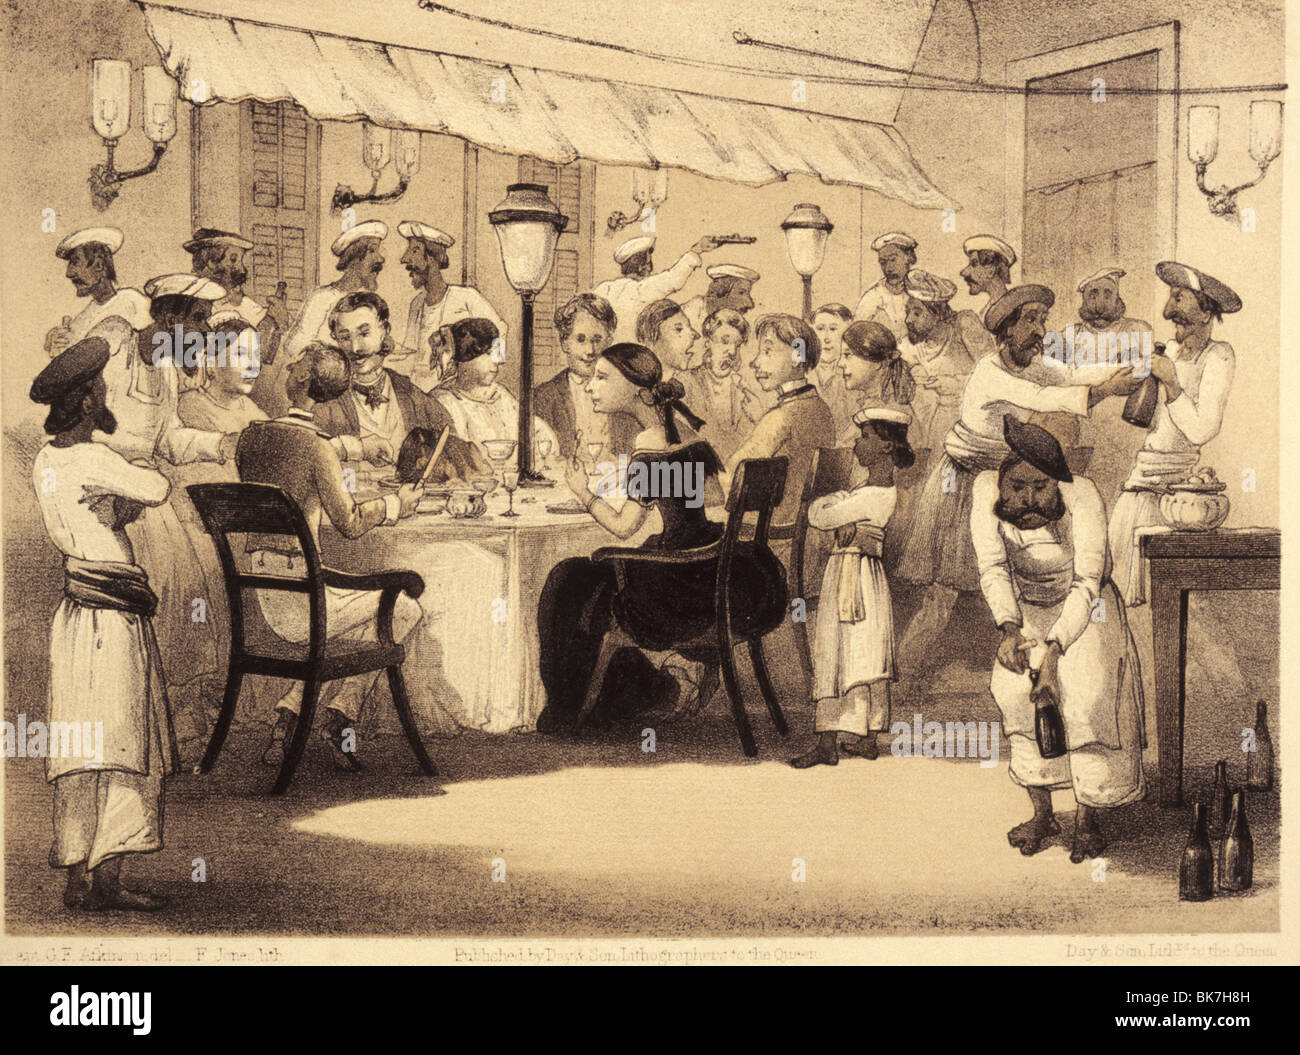 British colonials having dinner, from the satirical book Curry and Rice on forty Plates by G. F. Atkinson from 1859, - Stock Image